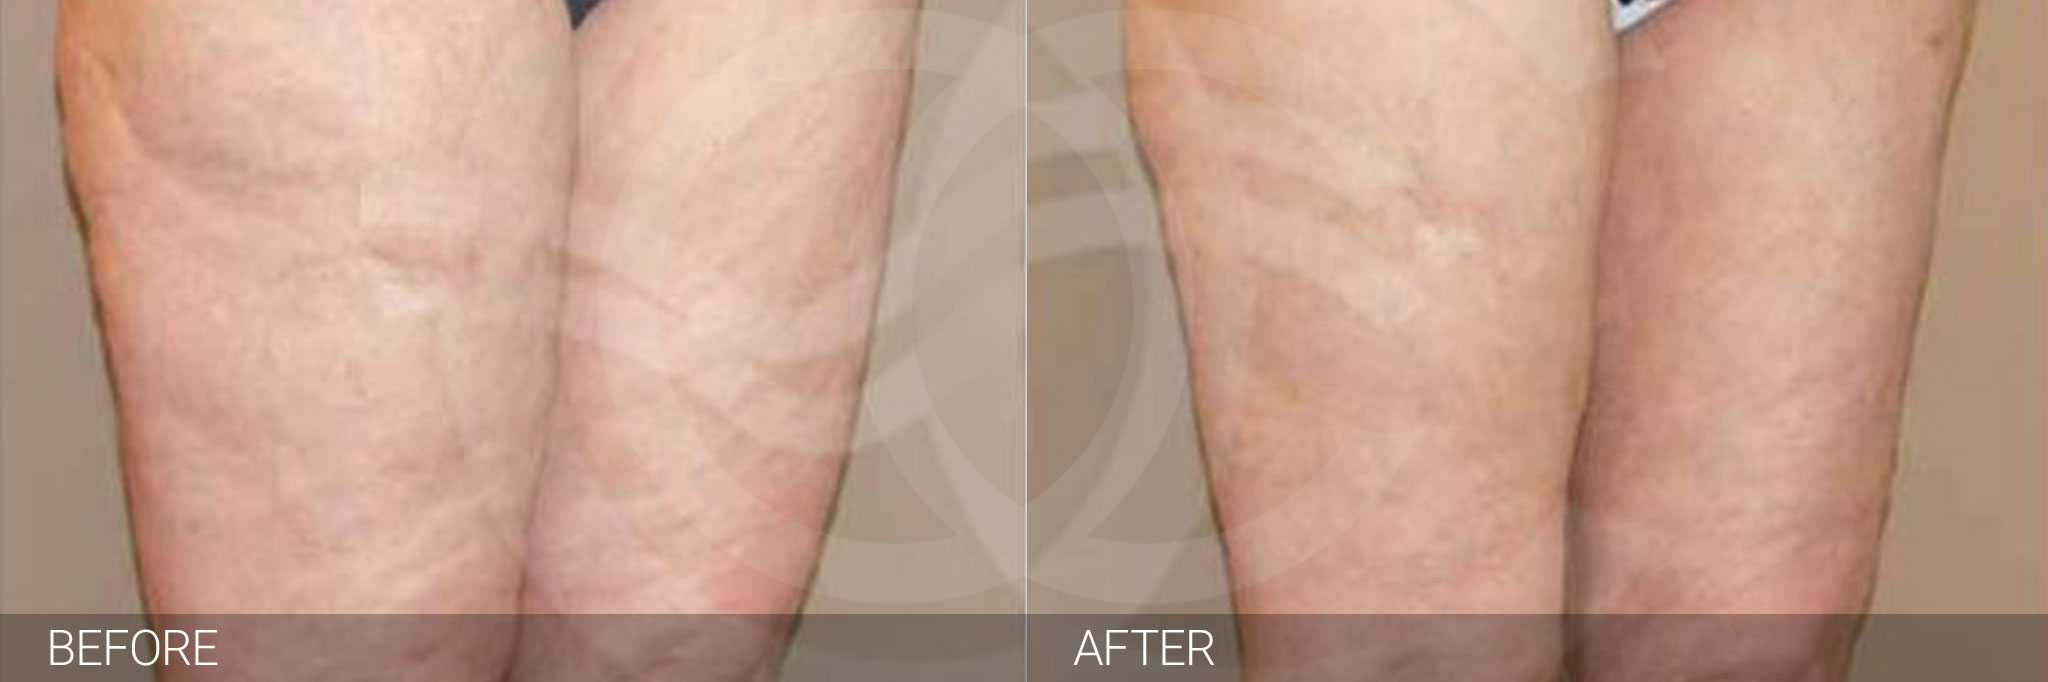 Thigh Lift Inner Crural Lift ante/post-op III